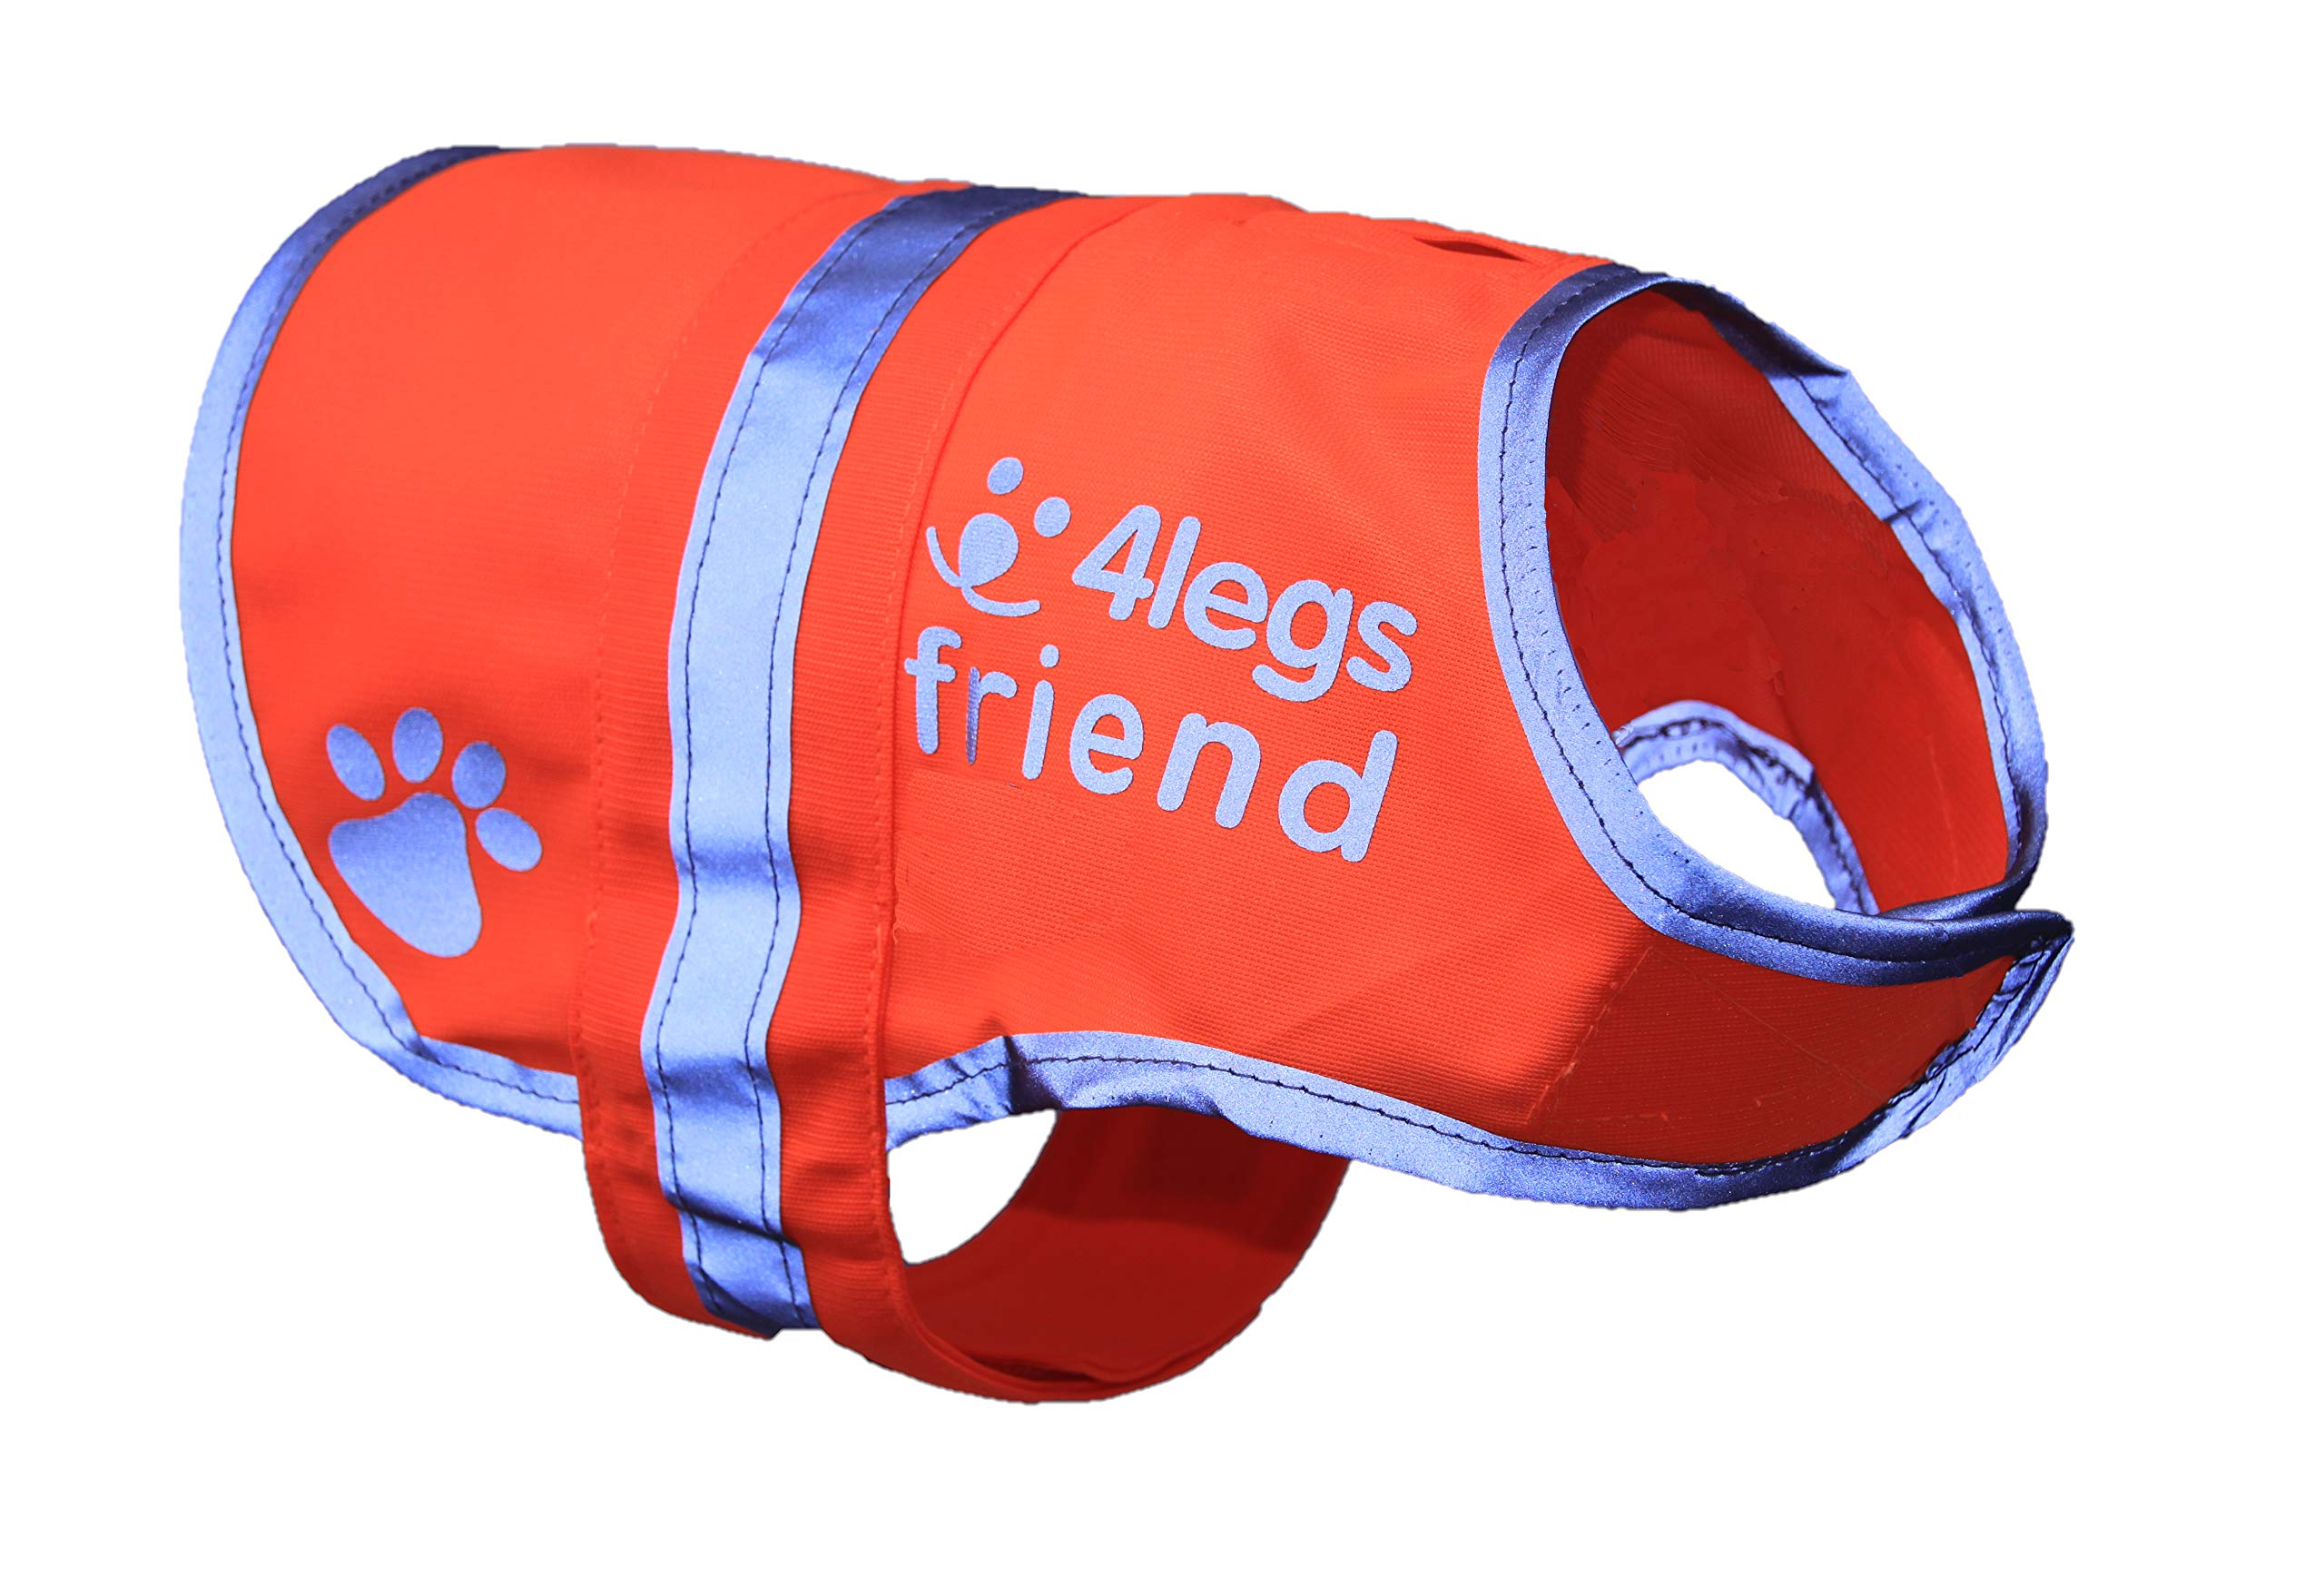 XL Safety Reflective Dog Vest (5 Sizes, X-Large, 85-130 lb) - High Visibility for Outdoor Activity Day and Night, Keep Your Dog, Visible & Safe from Cars & Hunting Accidents | Blaze Orange by 4LegsFriend